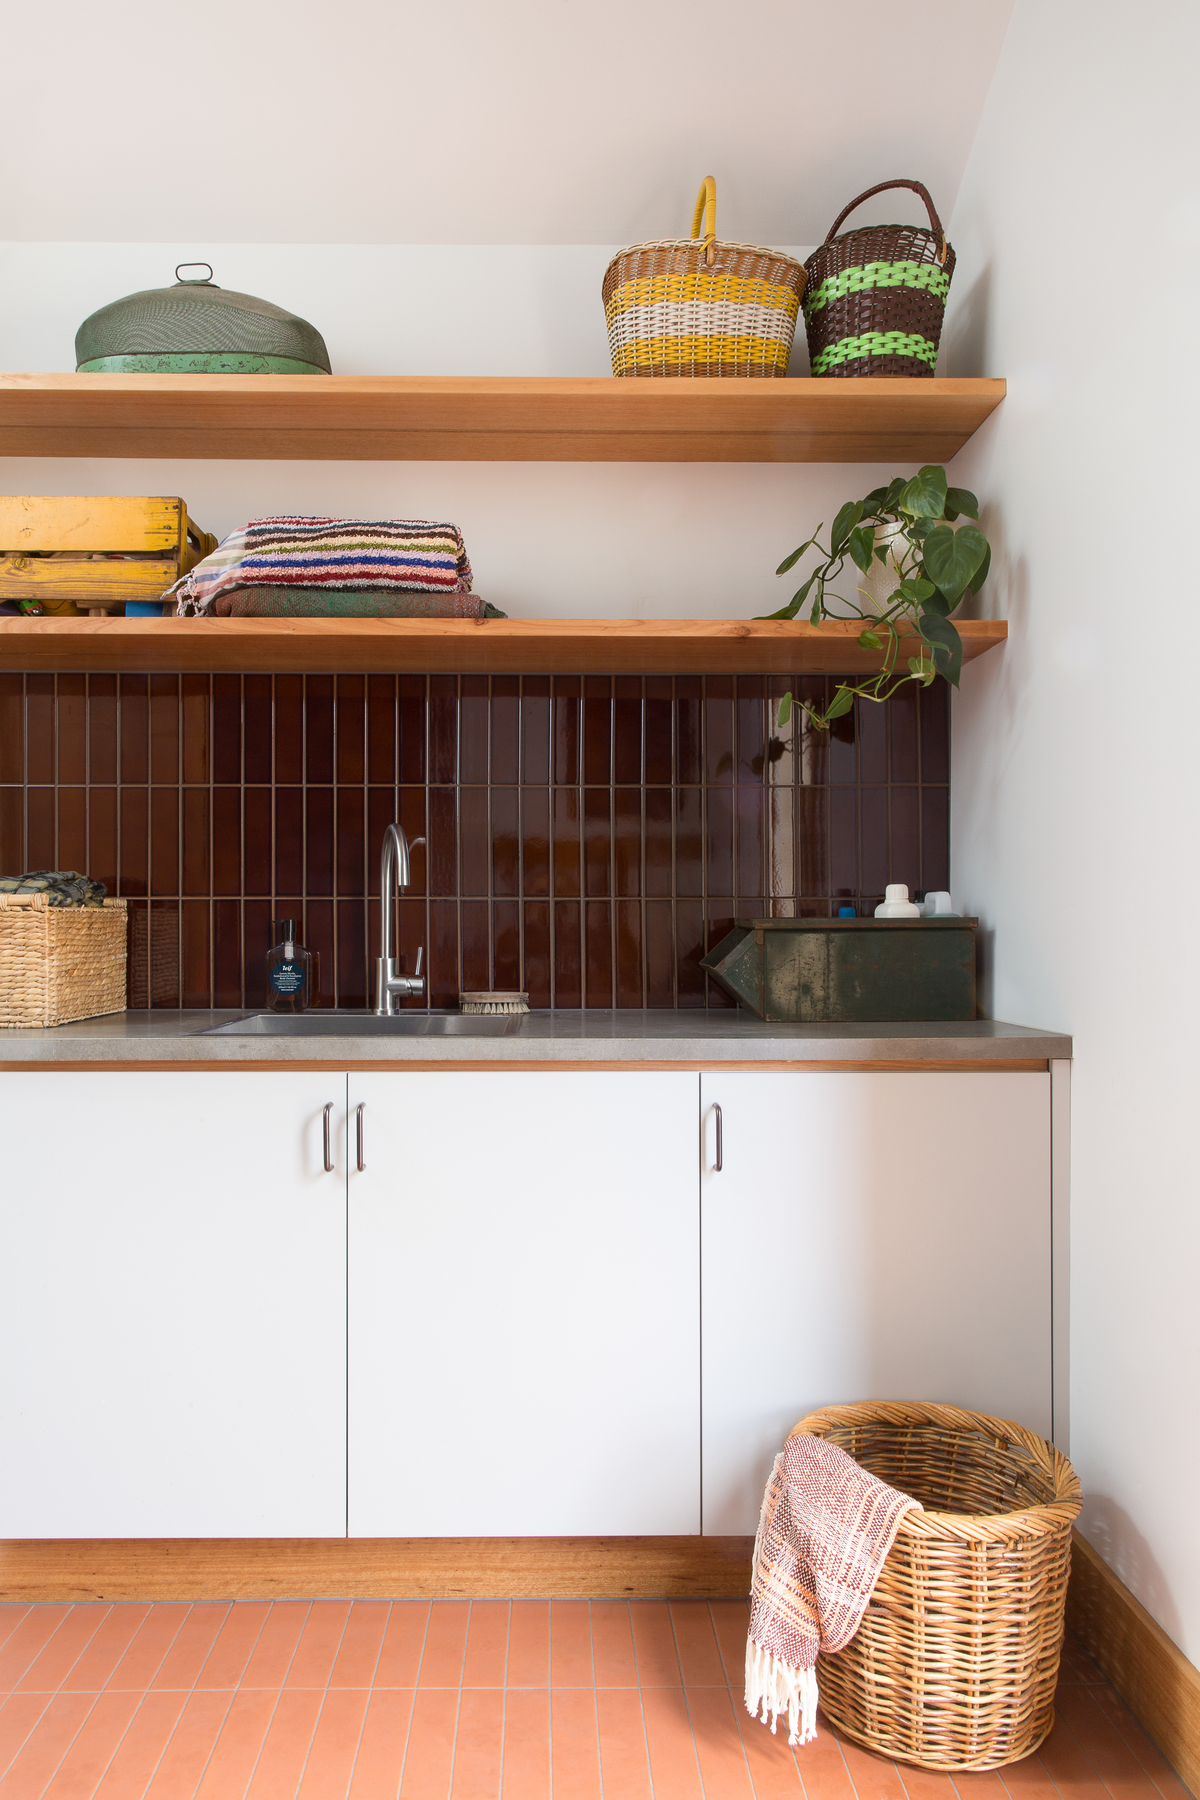 Bungalow Upcycle Project By Brave New Eco Local Design And Interiors Pascoe Vale, South Vic Image 1